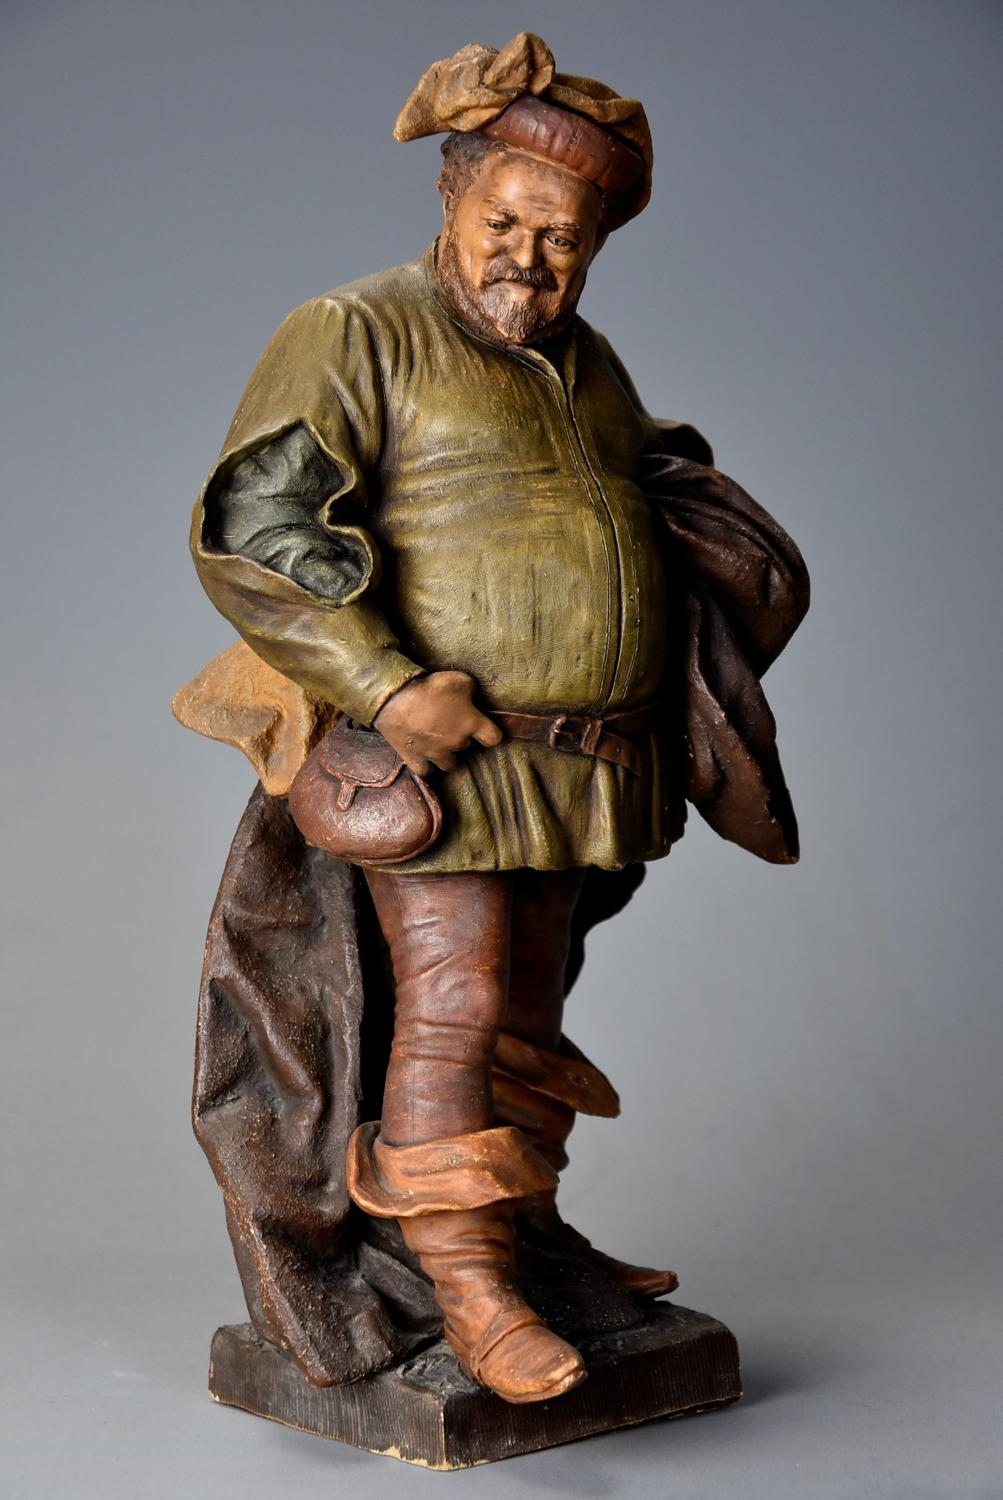 19thc terracotta figure of 'Falstaff' by Friedrich Goldscheider